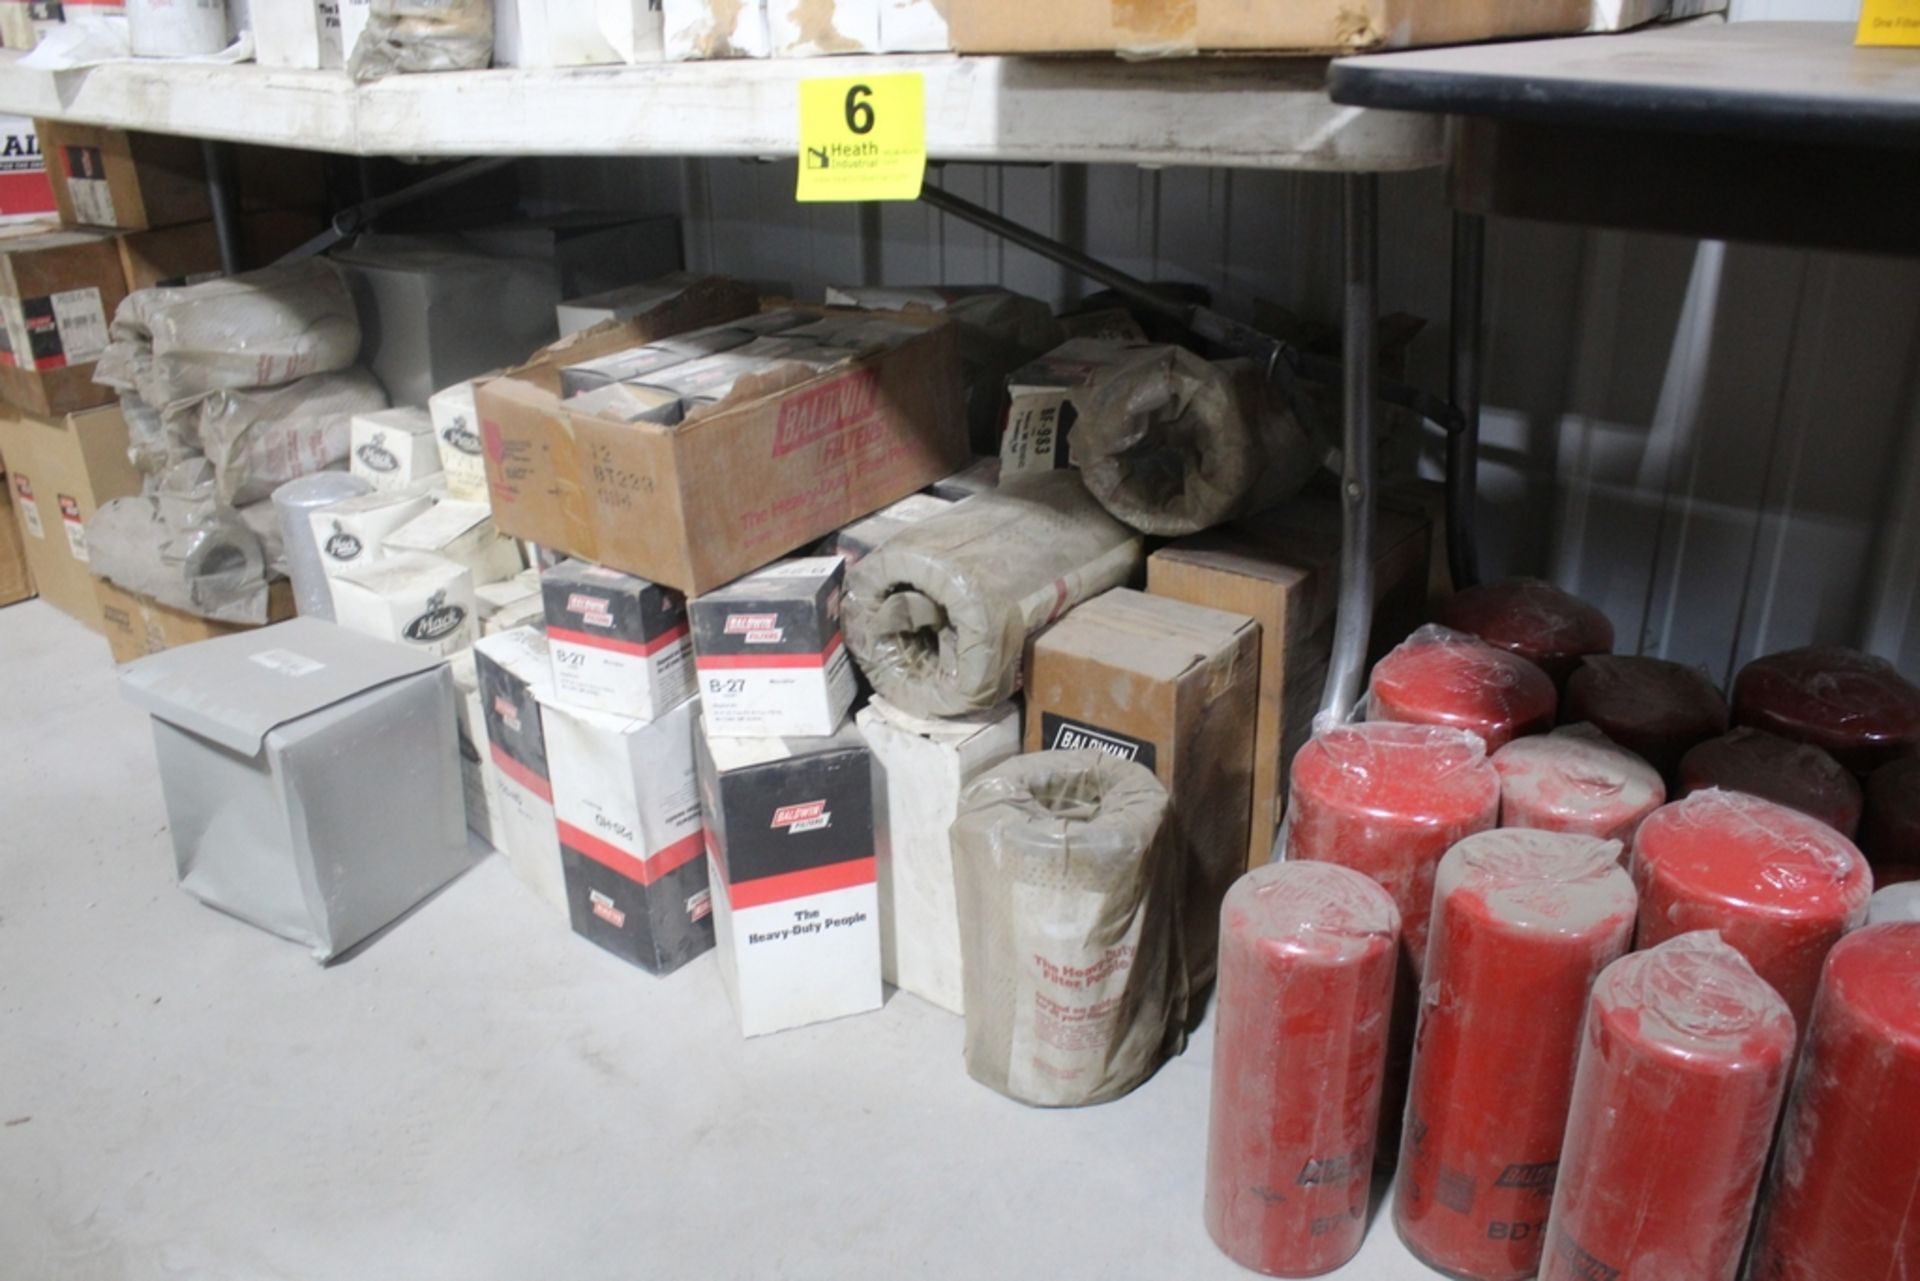 LARGE ASSORTMENT OF MACK AND BALDWIN FILTERS ON TABLE